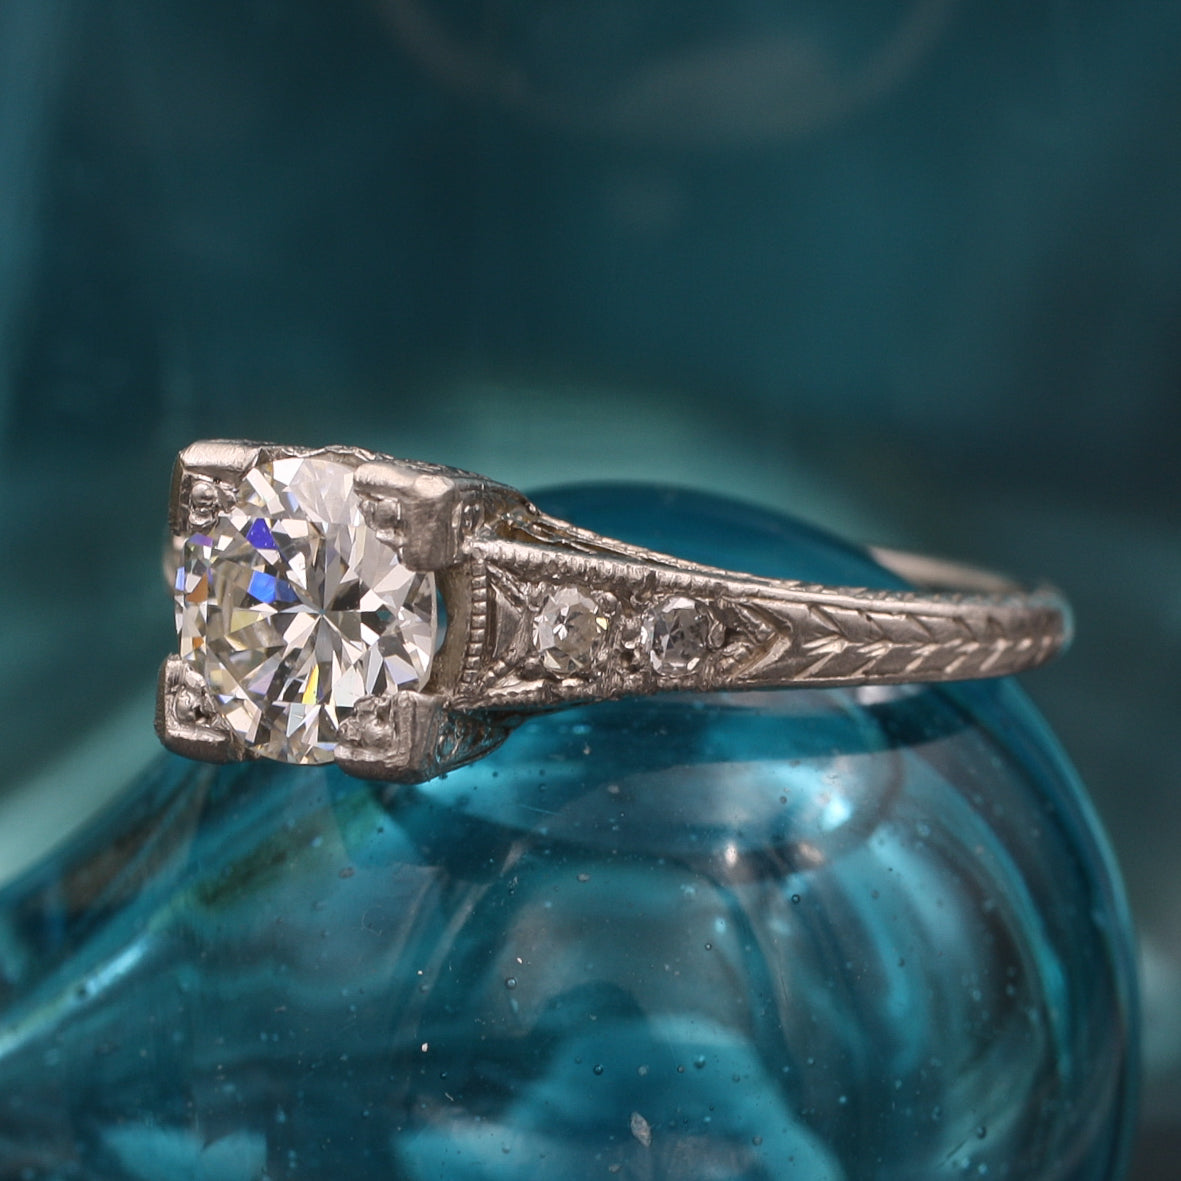 Embellished Square-Set Transitional Cut Diamond Ring c1920